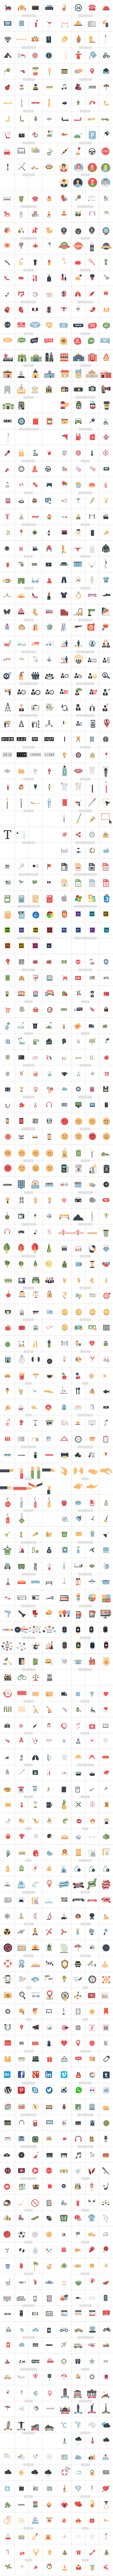 Flat Animated Icons Library - 20